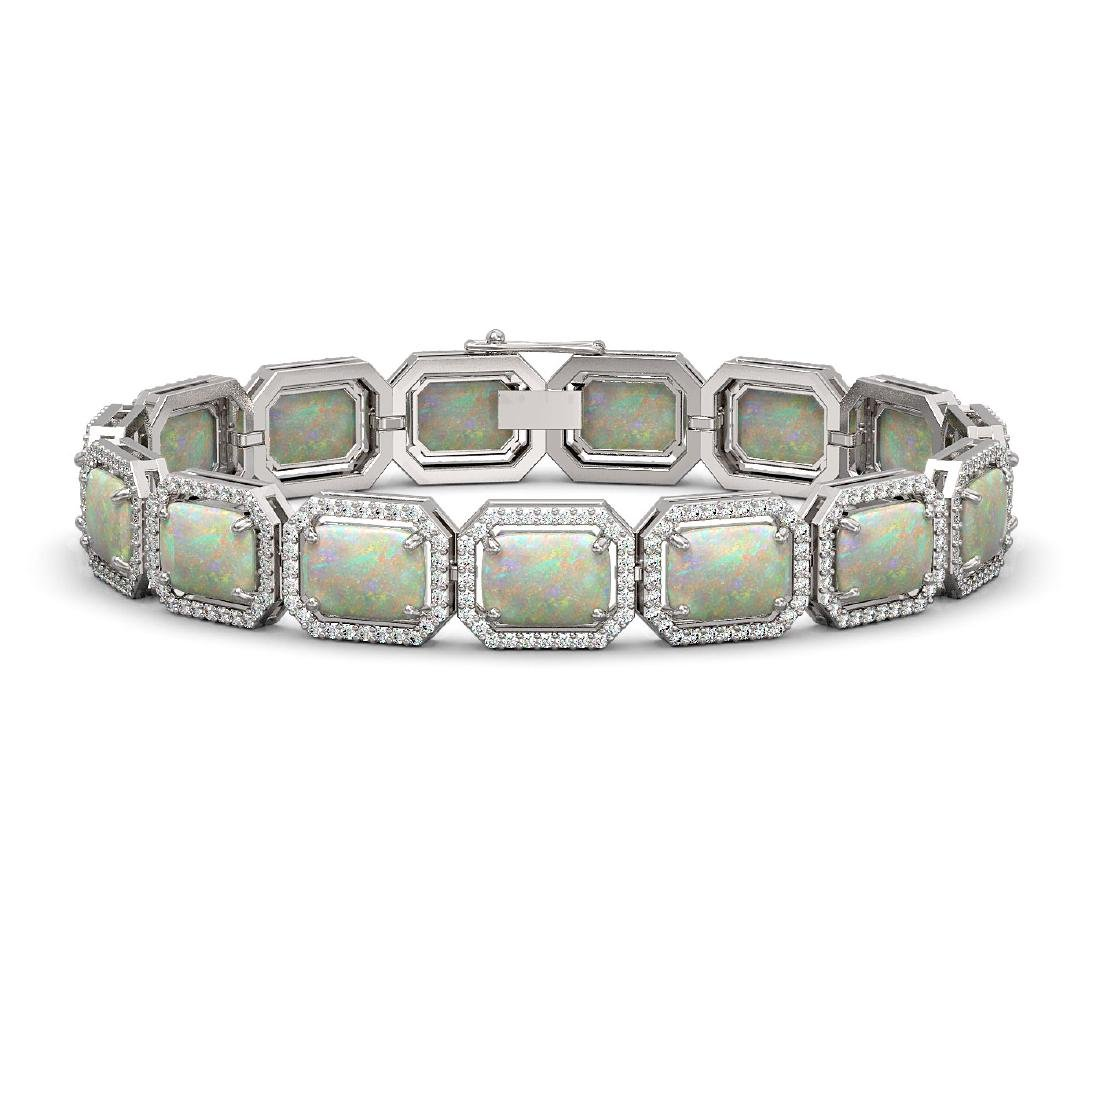 24.37 CTW Opal & Diamond Halo Bracelet 10K White Gold